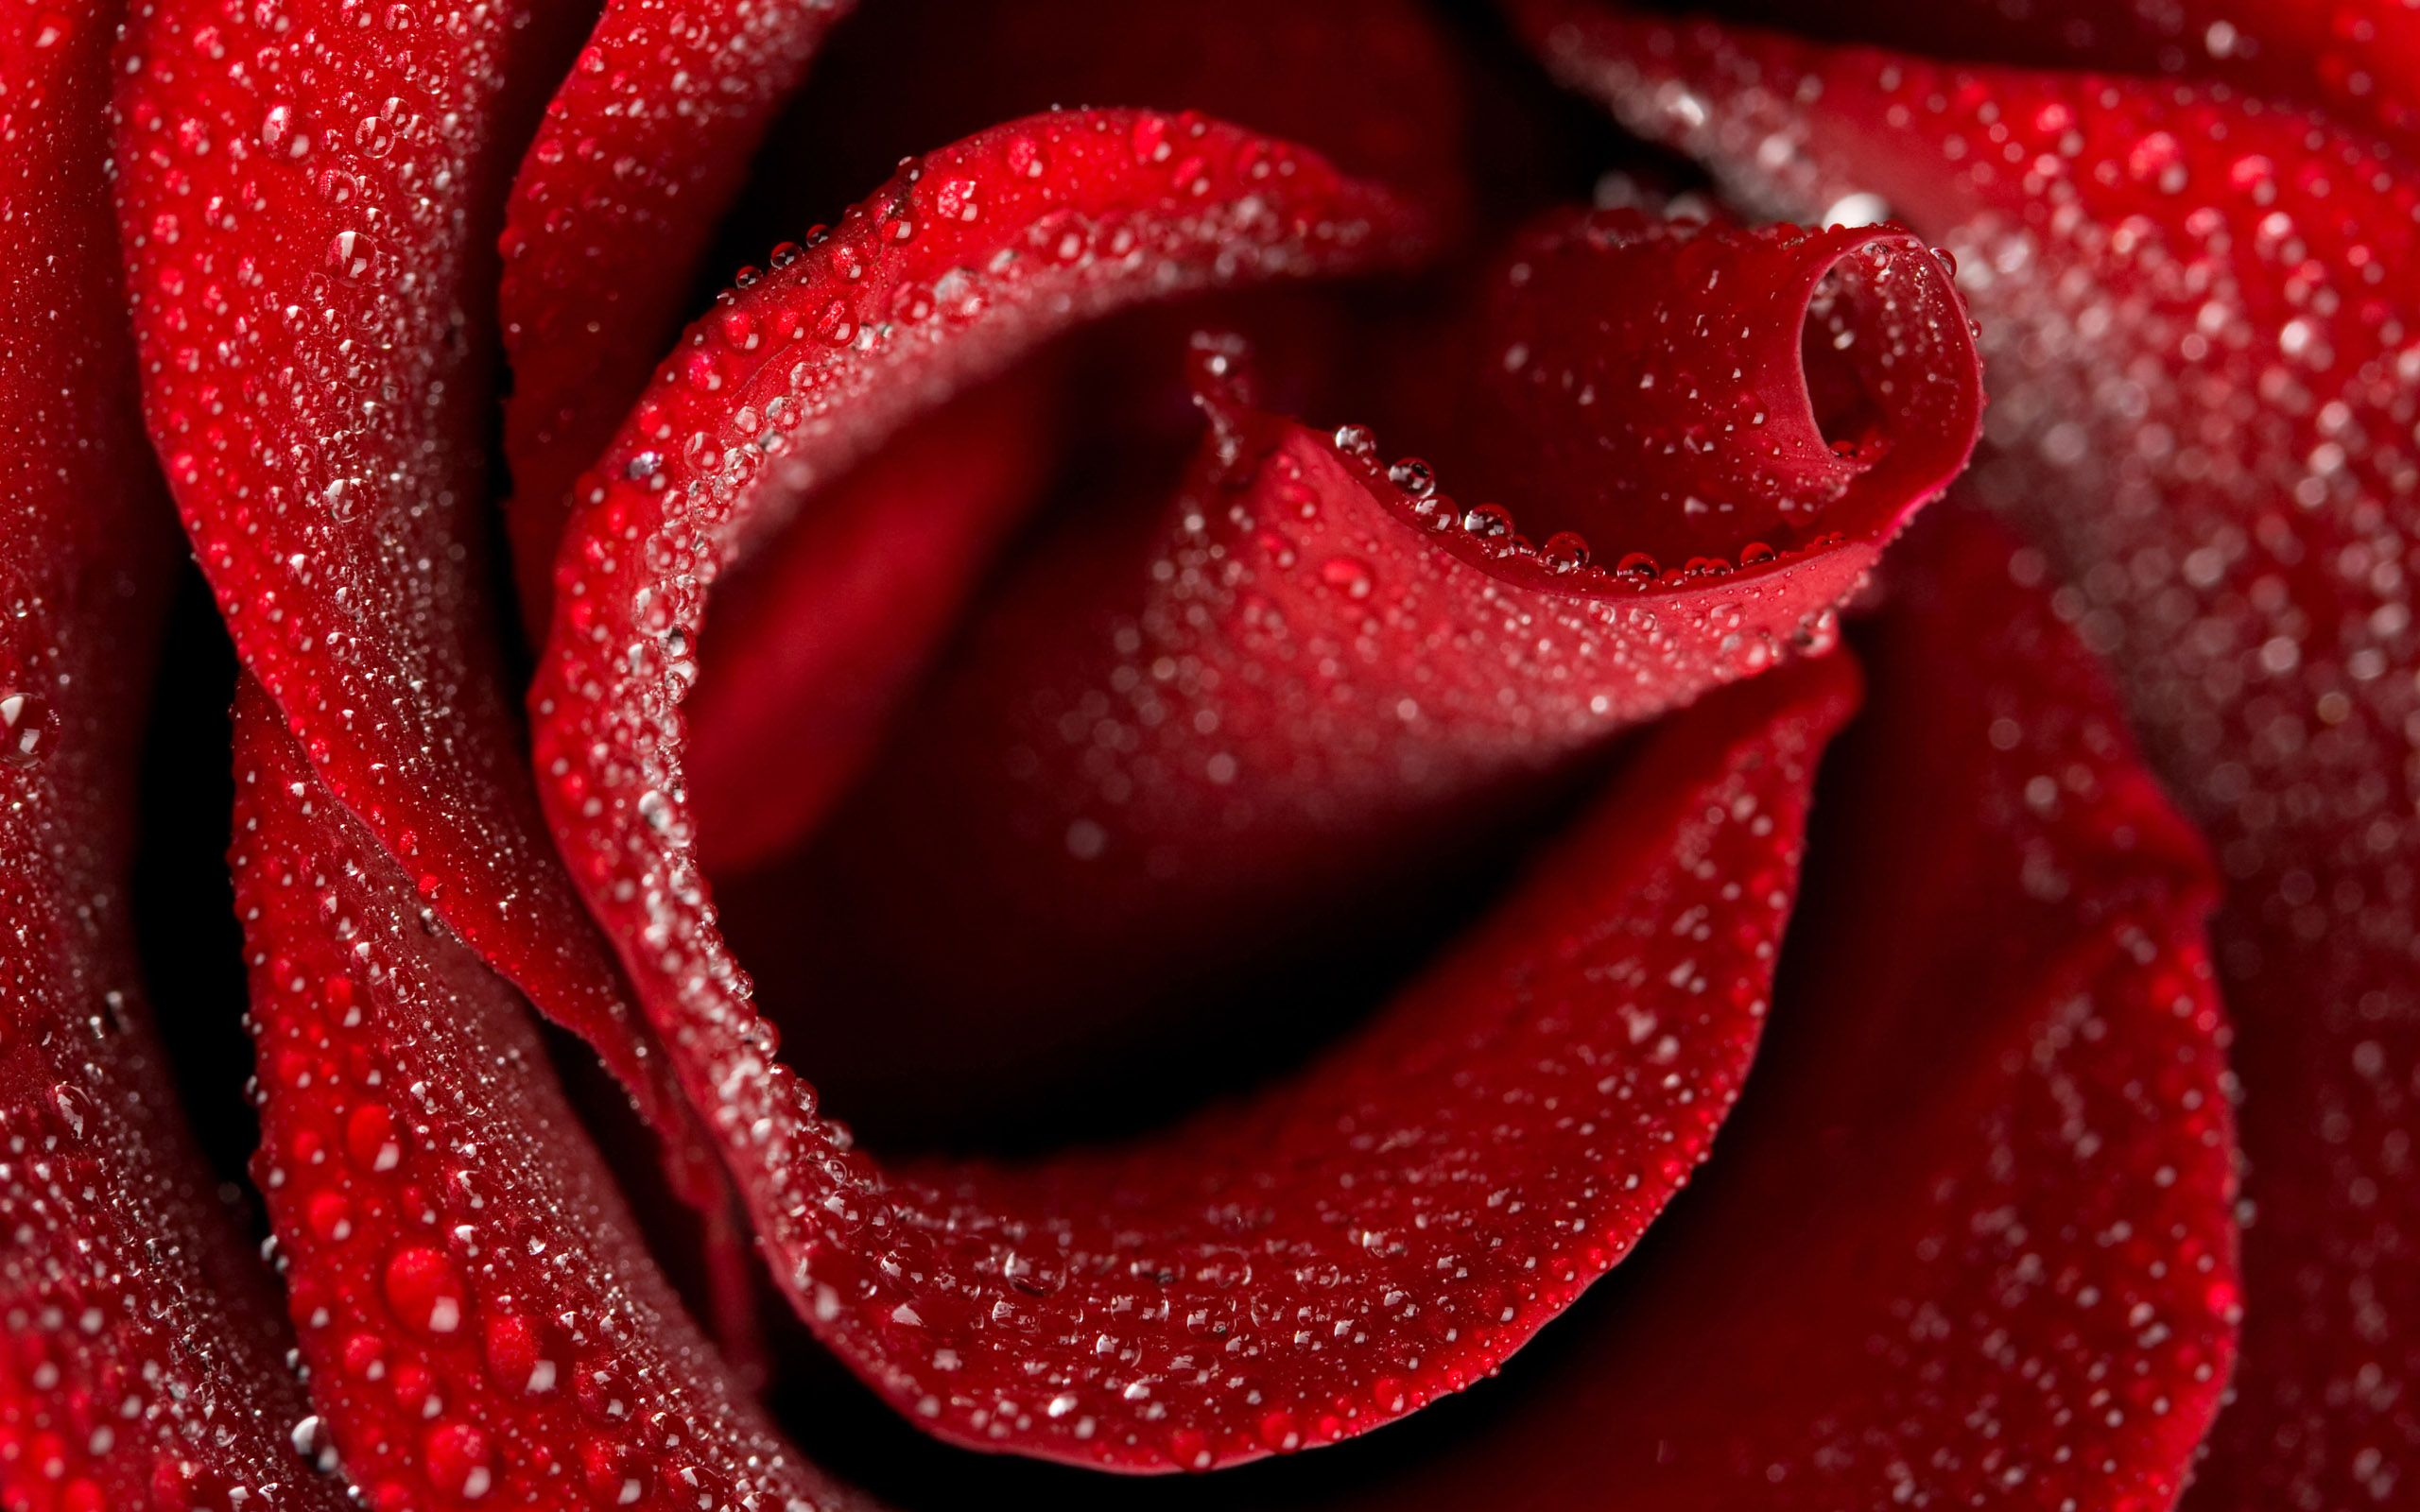 Rosen wallpapers - Red rose flower hd images ...